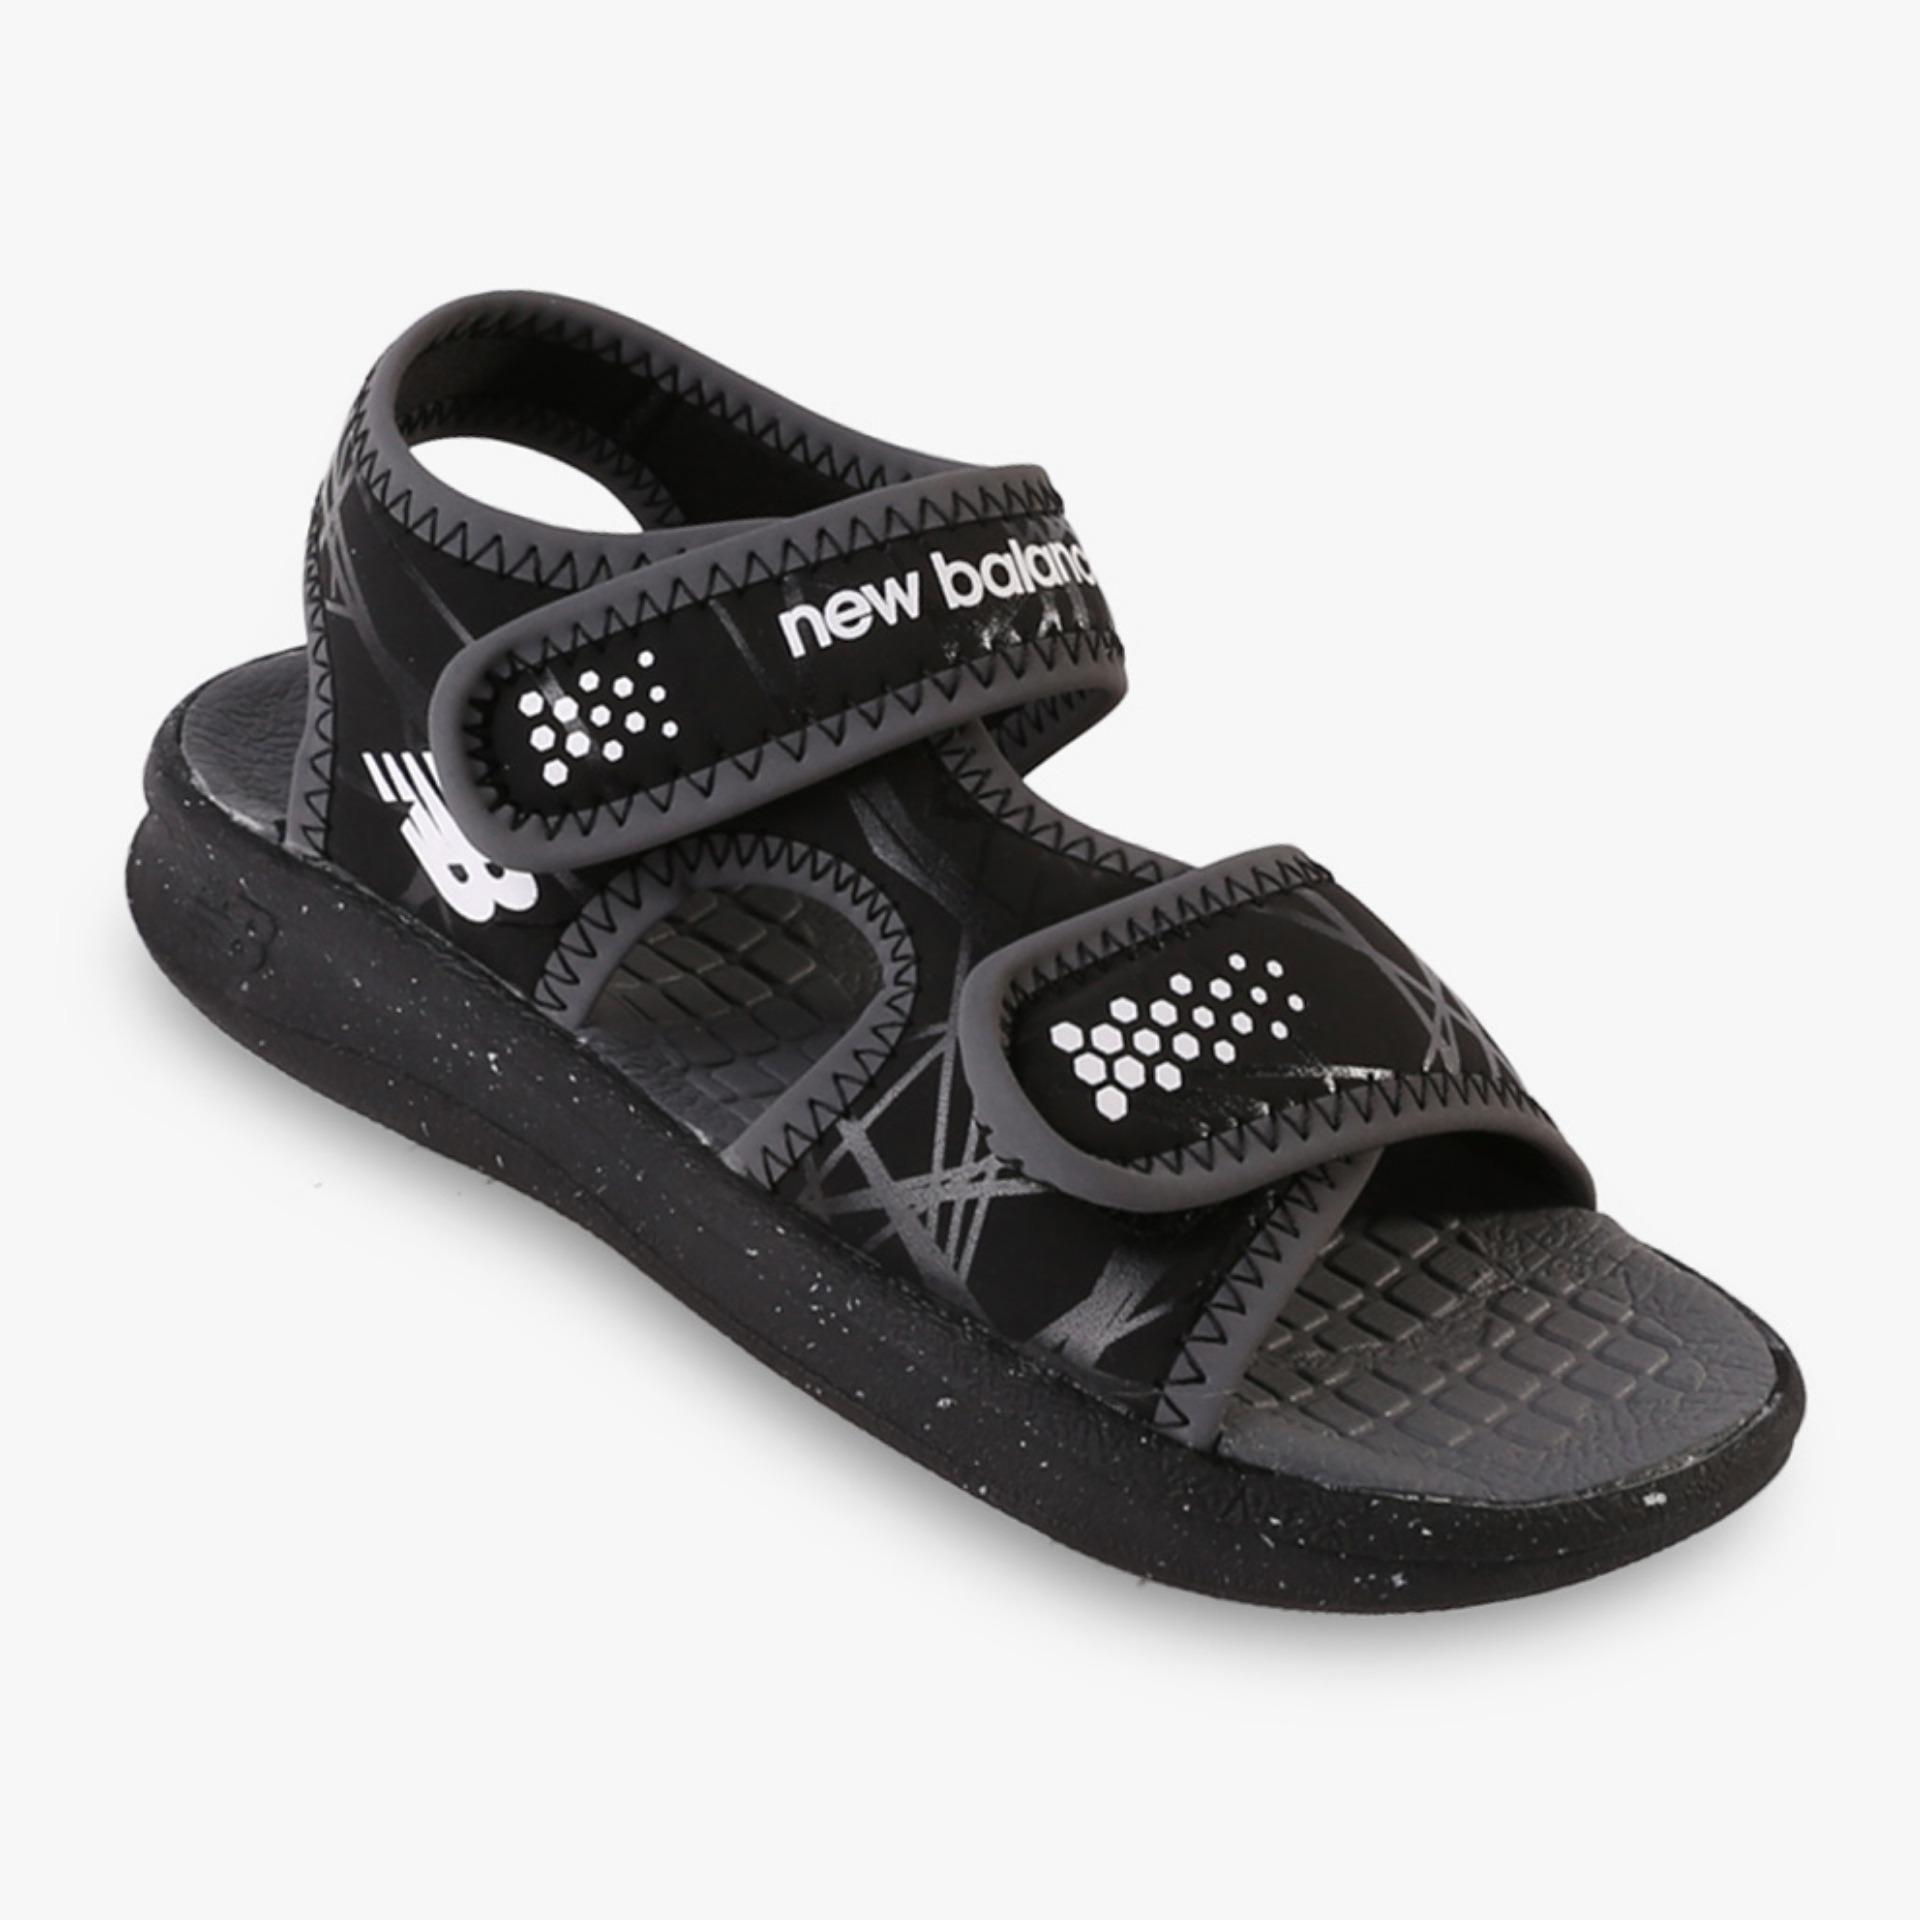 New Balance 2013 Boy's Sandals - Hitam